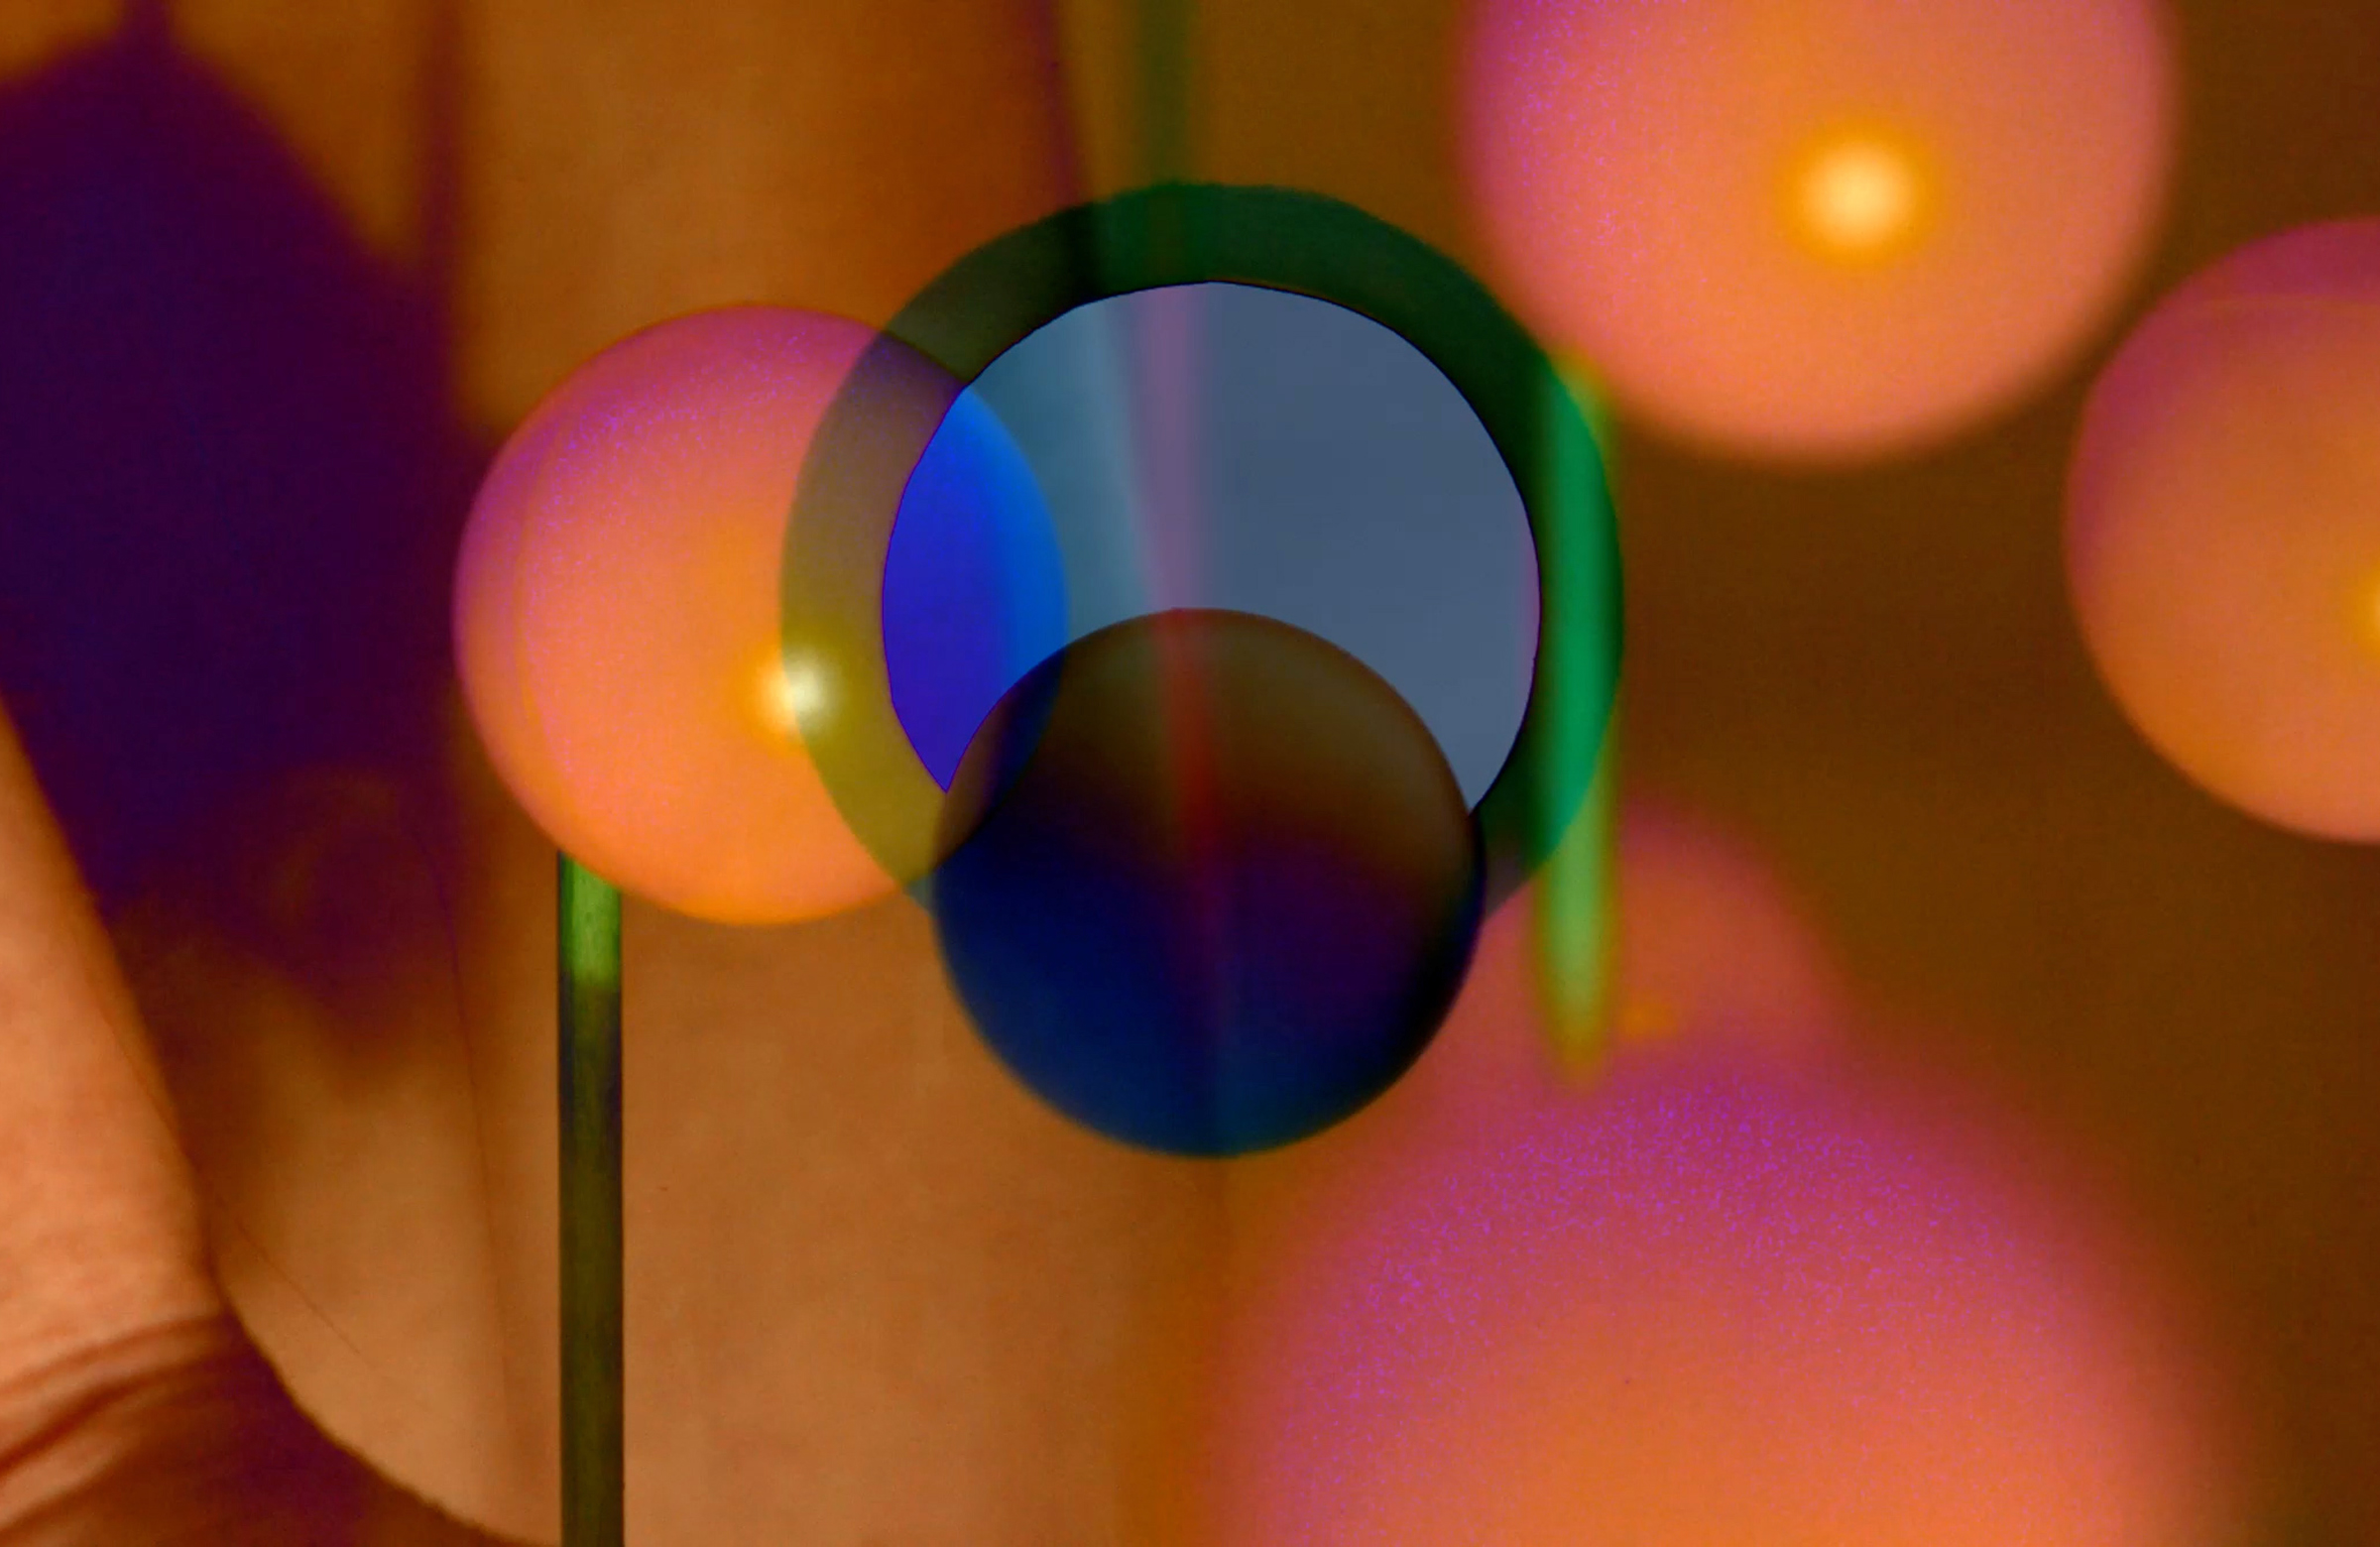 an abstract image of orange and pink blurred spheres with 2D blue toned circles in the foreground of the image